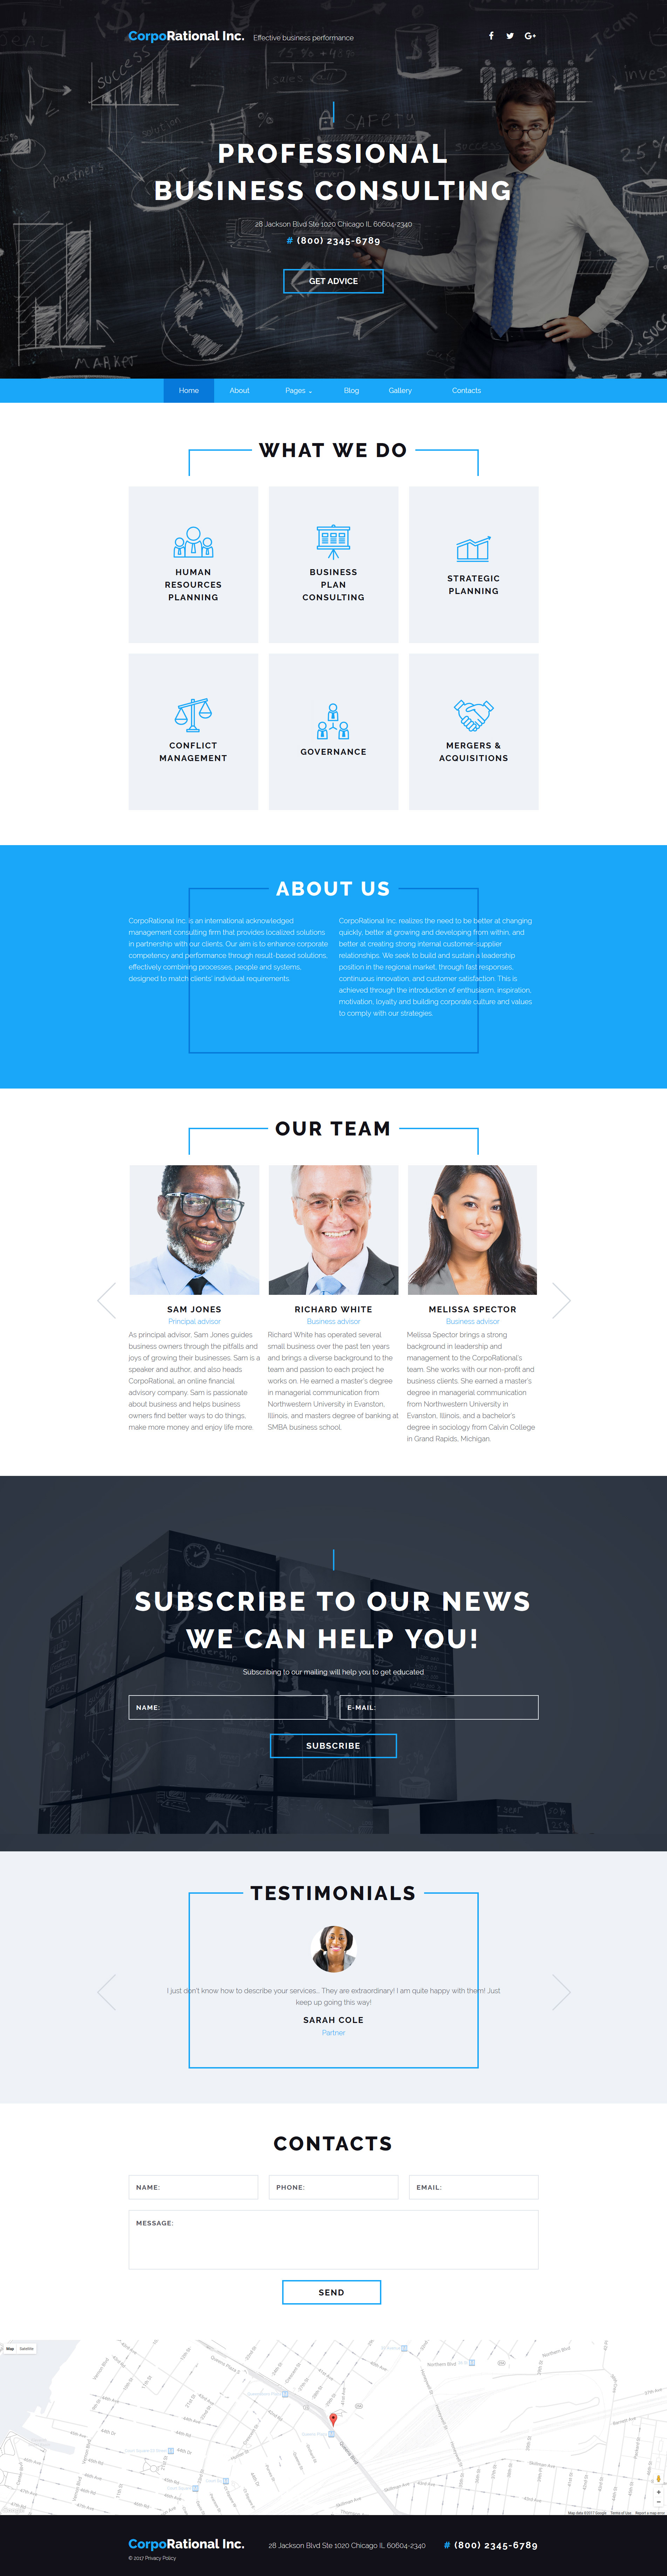 CorpoRational Inc - Business Consulting Template Joomla №62157